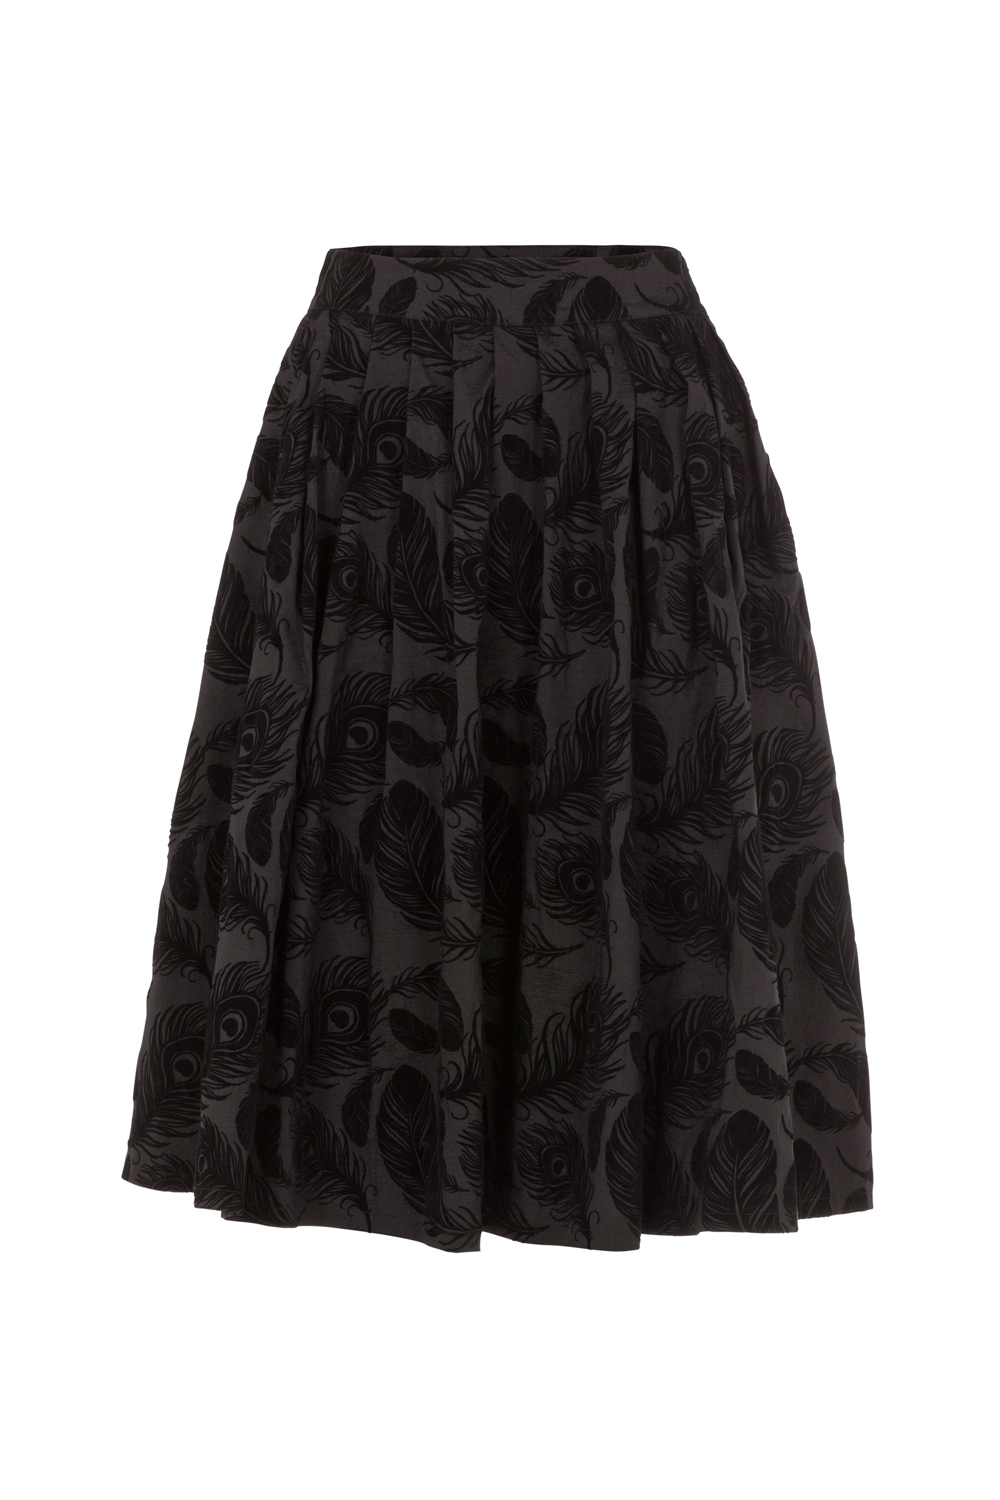 Andrea Flocked Feather Black Skirt